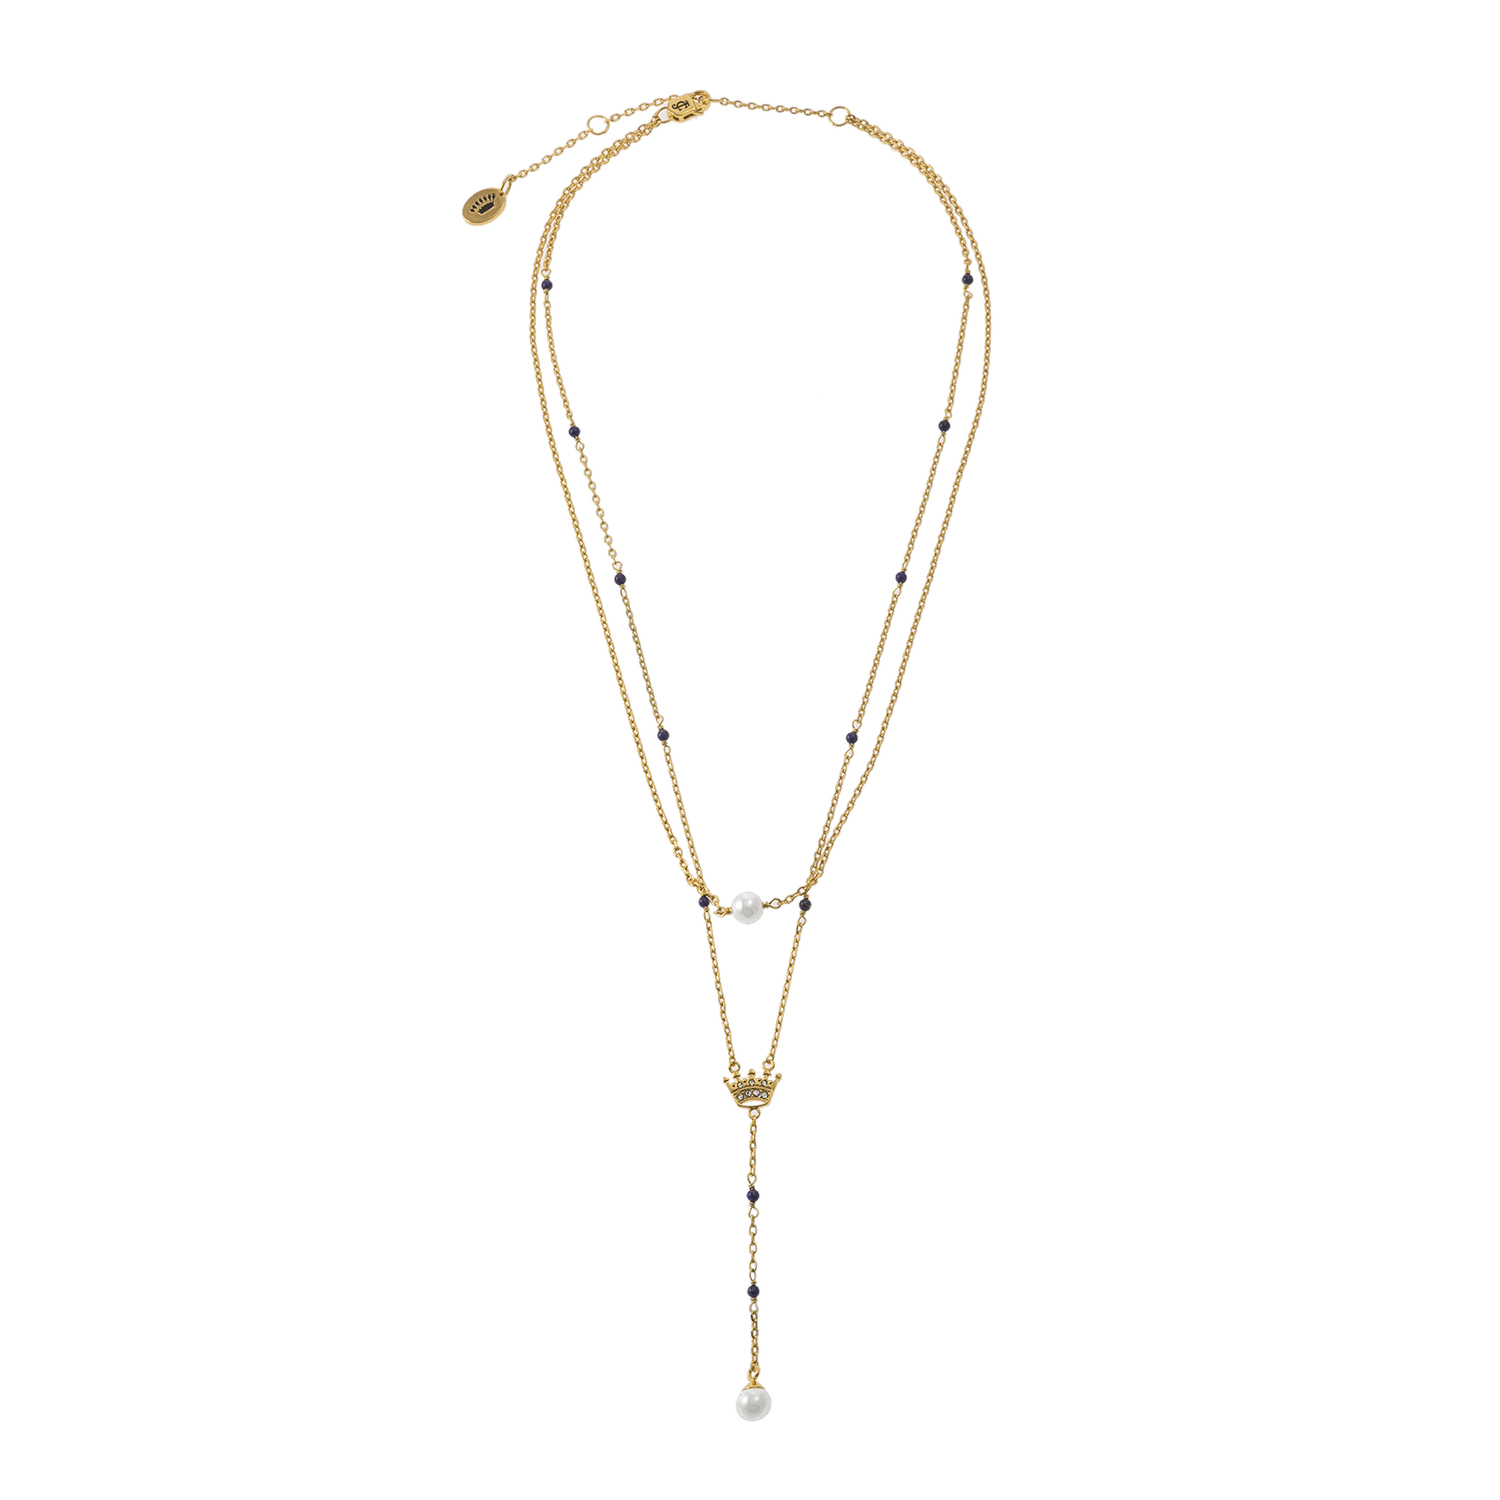 JUICY COUTURE - Κολιέ Juicy Couture Beaded Crown Luxe Wishes χρυσό γυναικεία αξεσουάρ κοσμήματα κολιέ